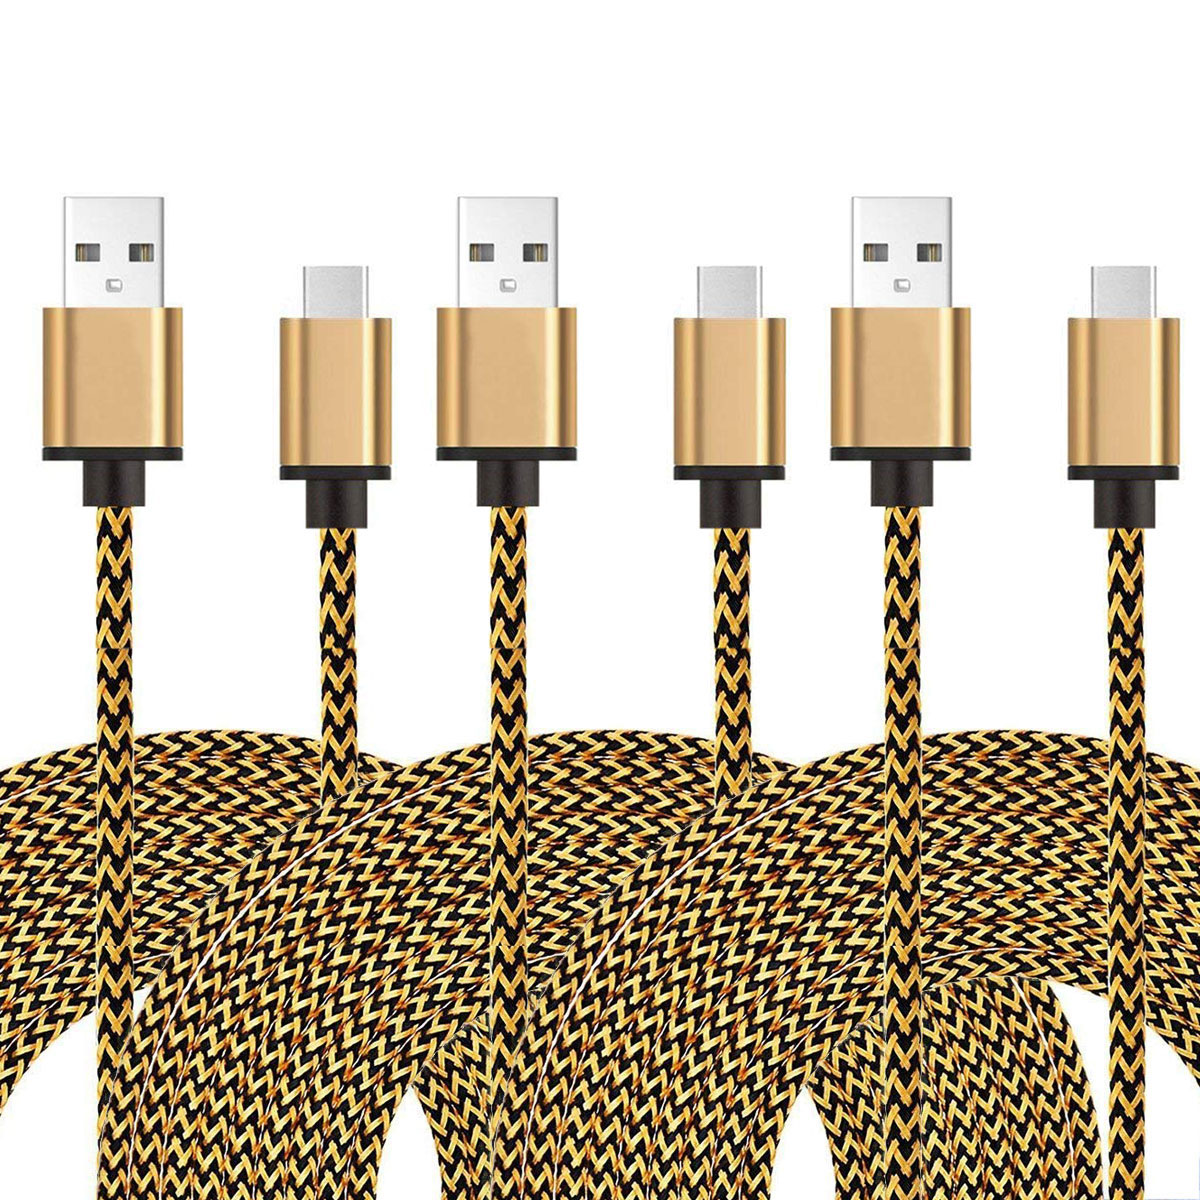 Type C Cable, EEEKit 3-Pack 10ft USB Type C Fast Charging Cable Data Sync Cord For Samsung Galaxy S9/S9 Plus S8/S8 Plus Note 9/8, LG G7 G6 V40 V30 G5